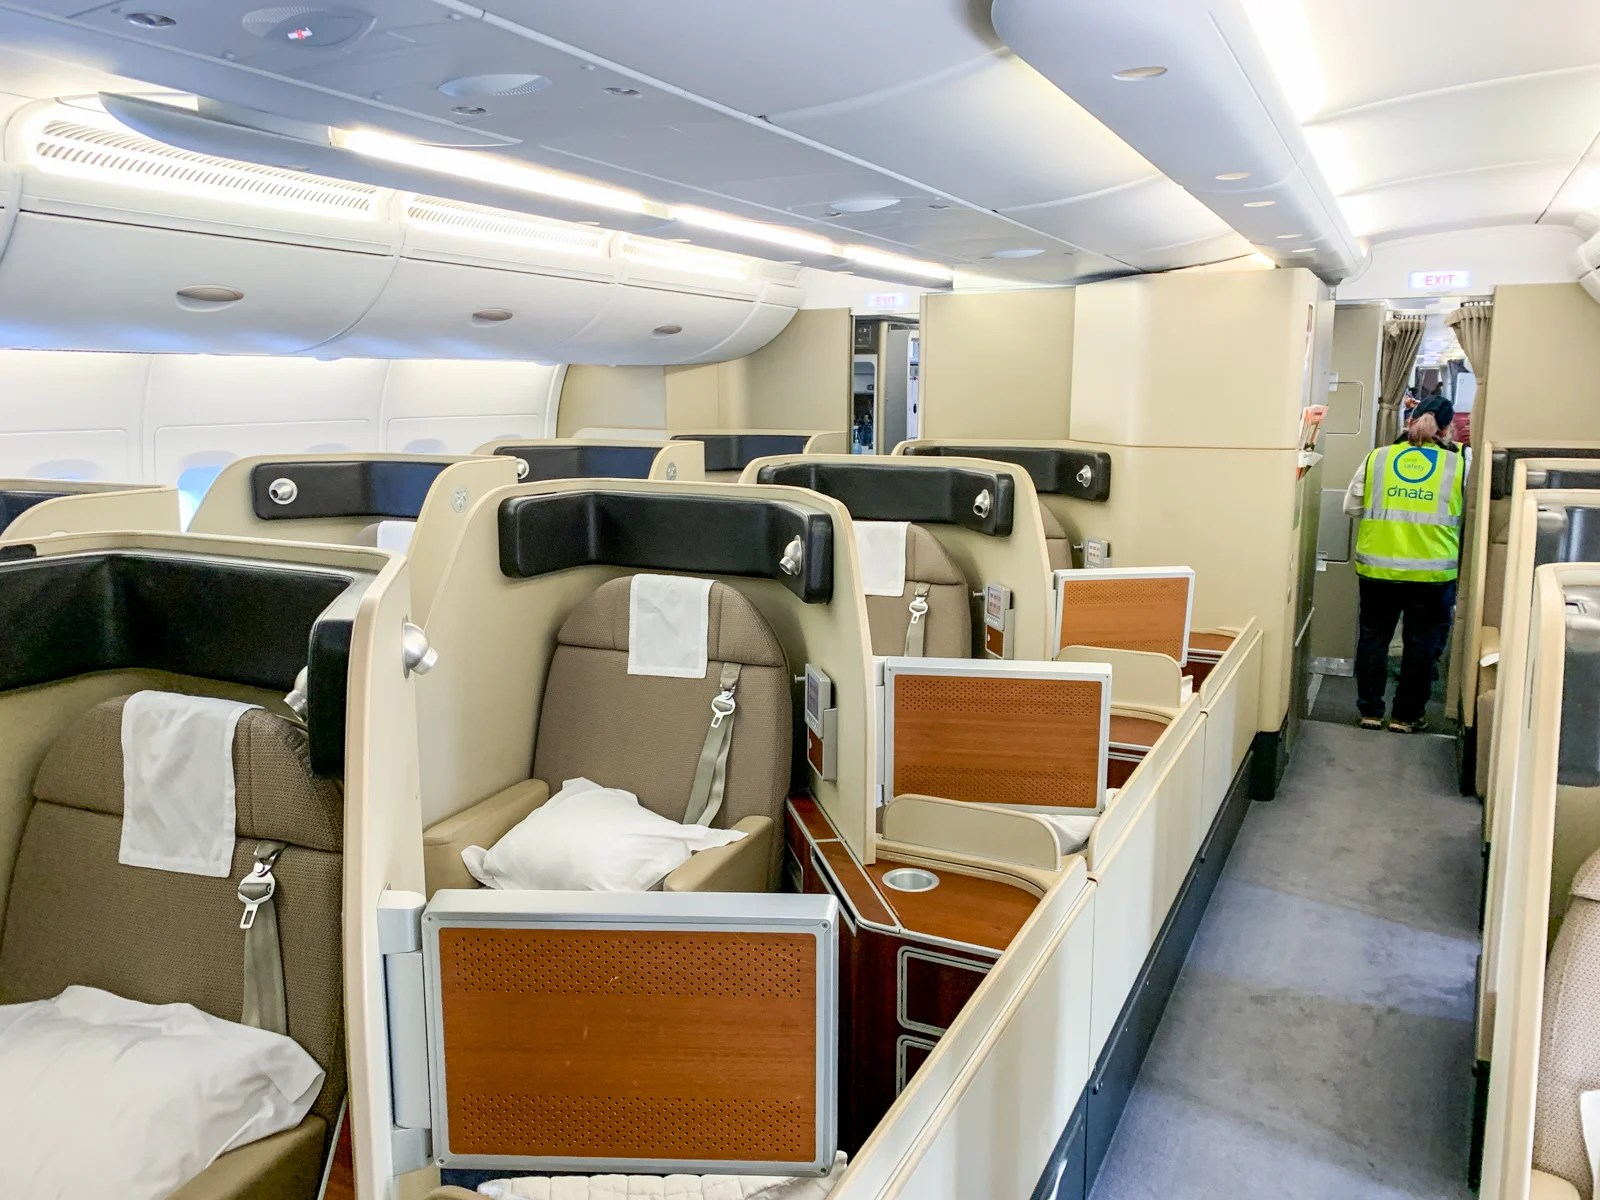 These airlines have stopped offering first class due to the pandemic - The Points Guy